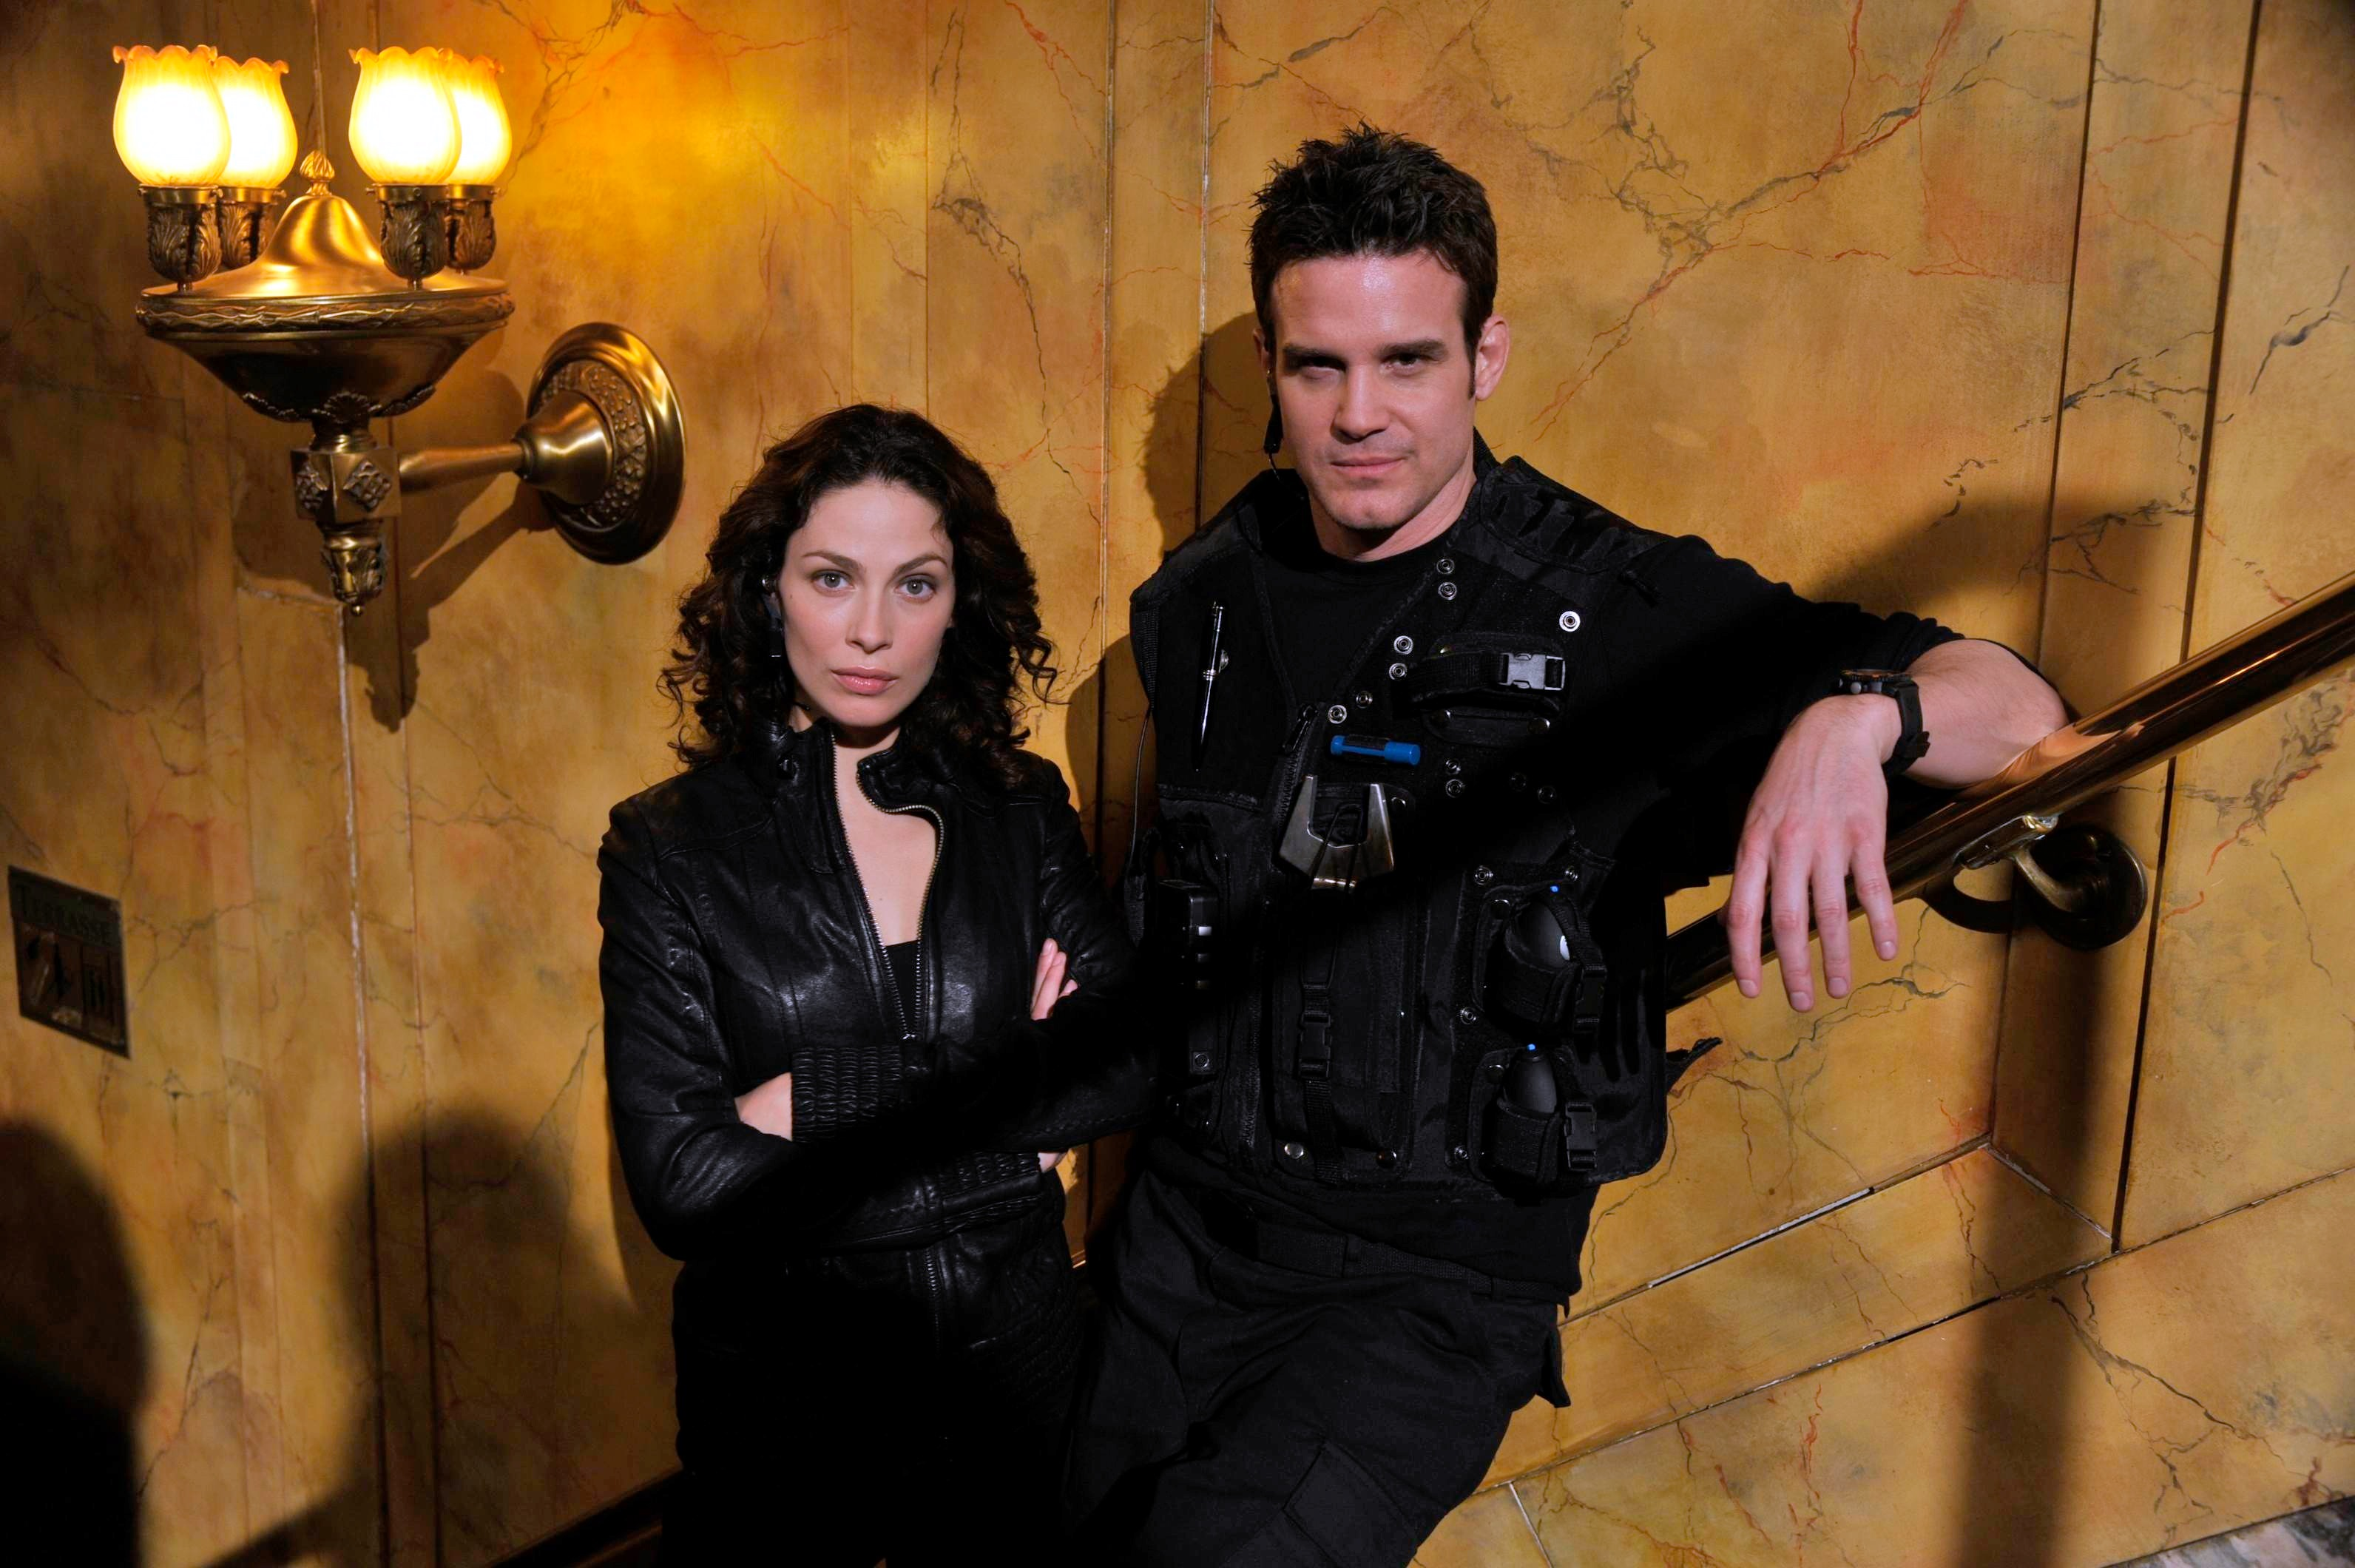 Joanne Kelly Tattoo Eddie mcclintock